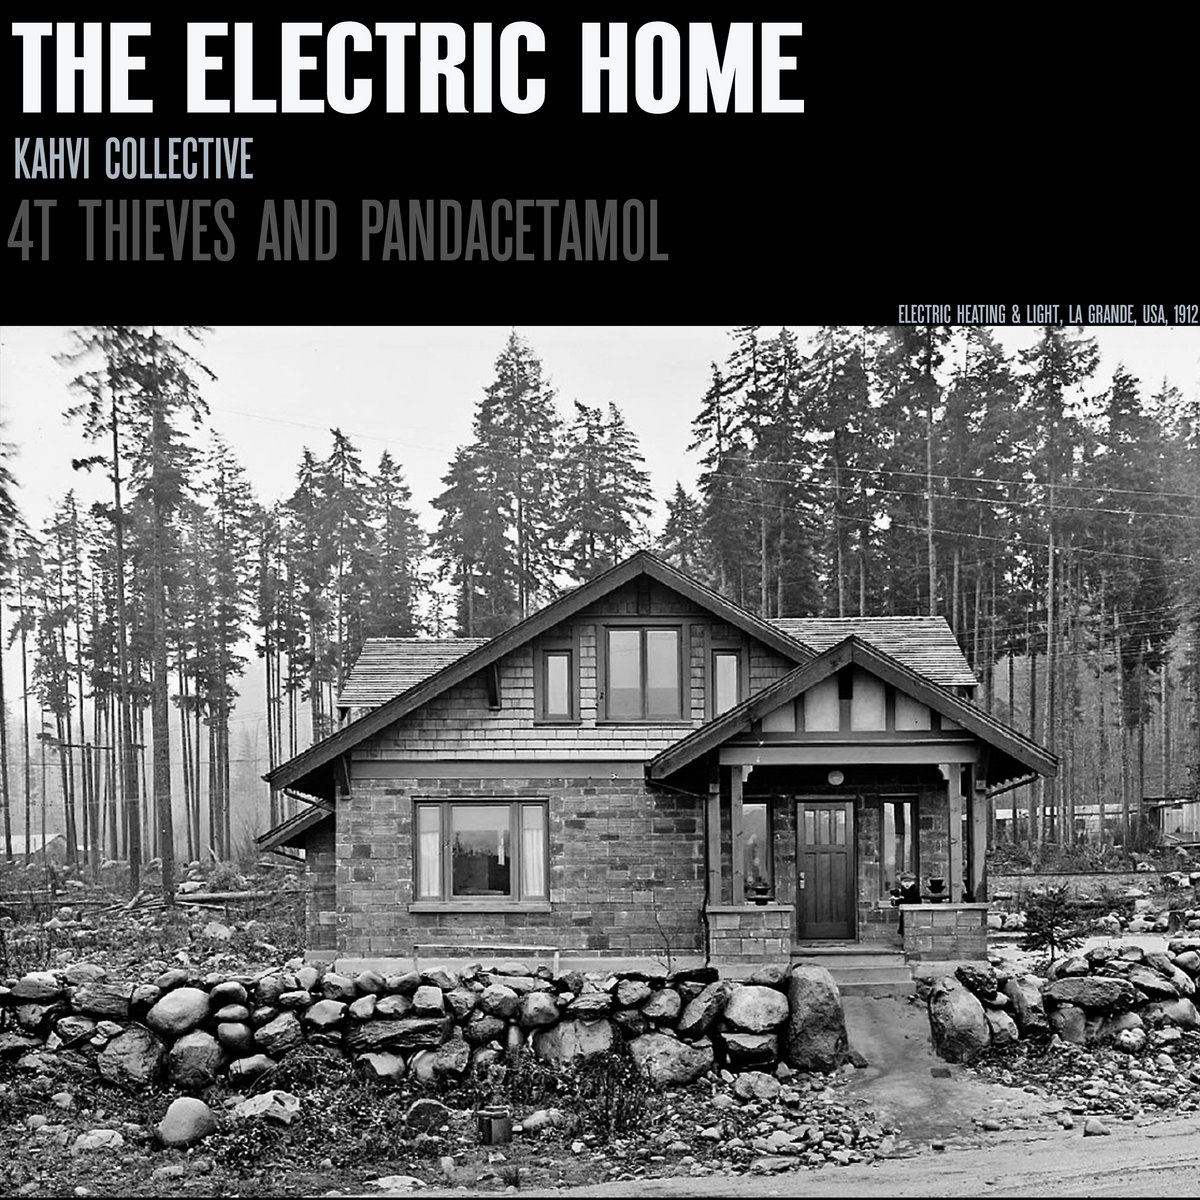 4T Thieves and Pandacetamol – The Electric Home